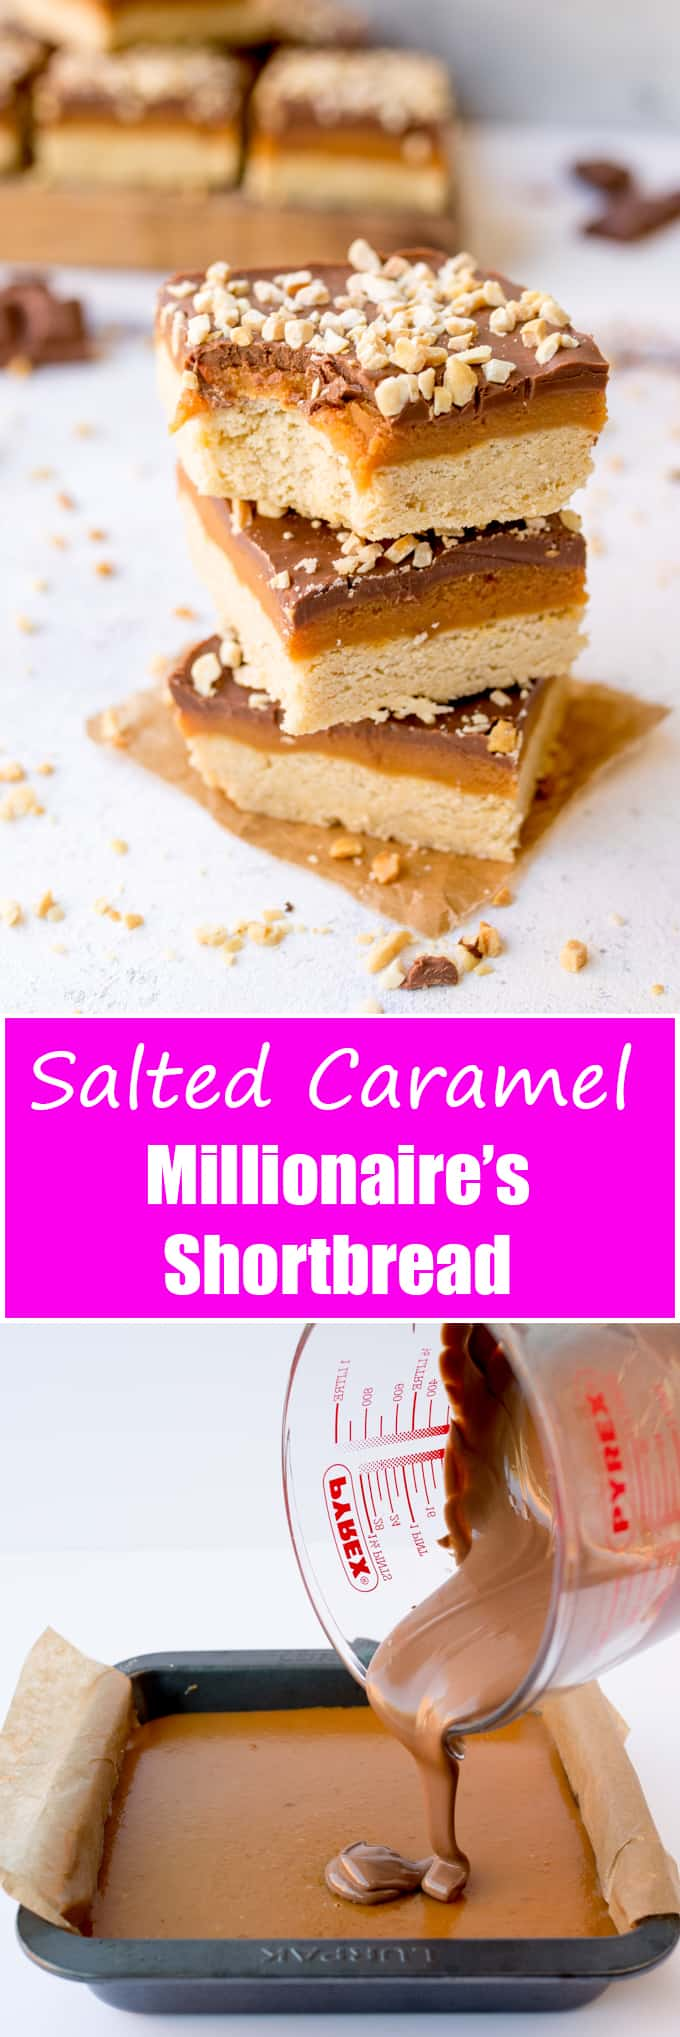 This Salted Caramel Millionaires Shortbread topped with roasted hazelnuts is a real treat – perfect for picnics!